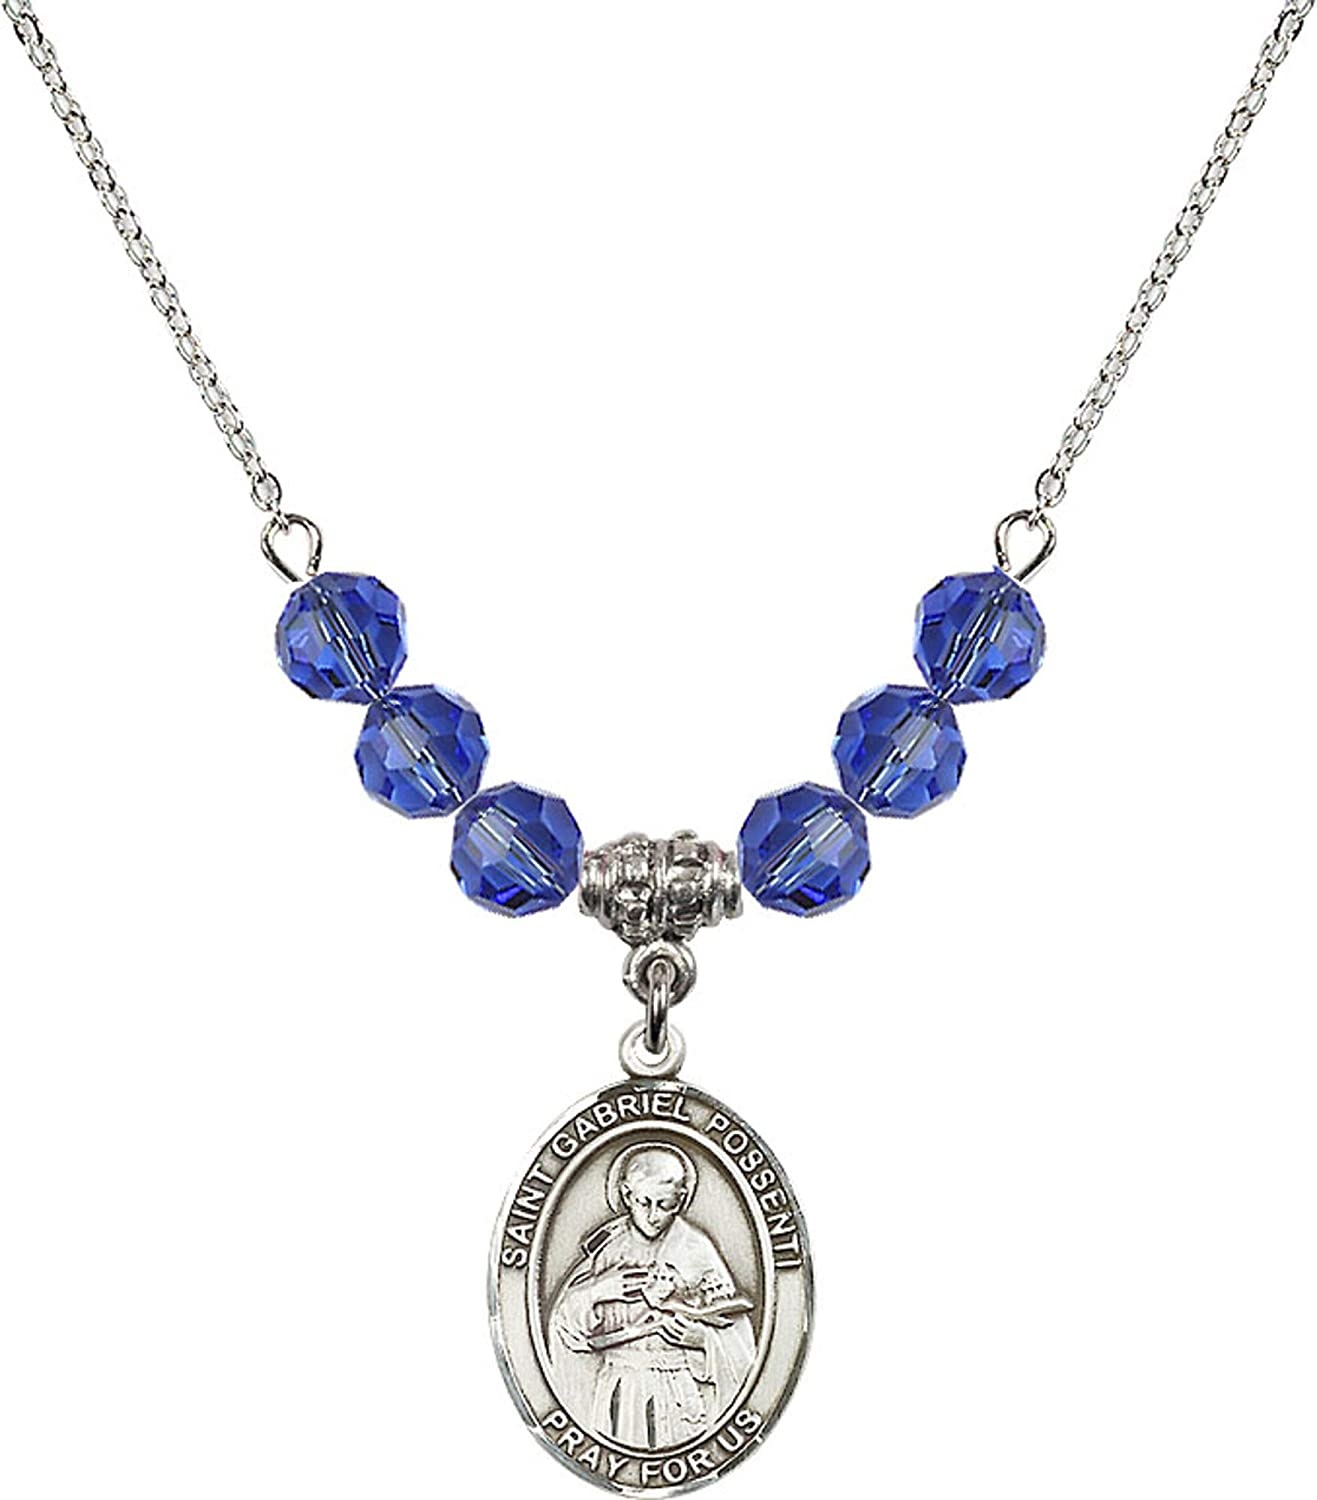 Bonyak Jewelry 18 Inch Rhodium Plated Necklace w// 6mm Blue September Birth Month Stone Beads and Saint Gabriel Possenti Charm